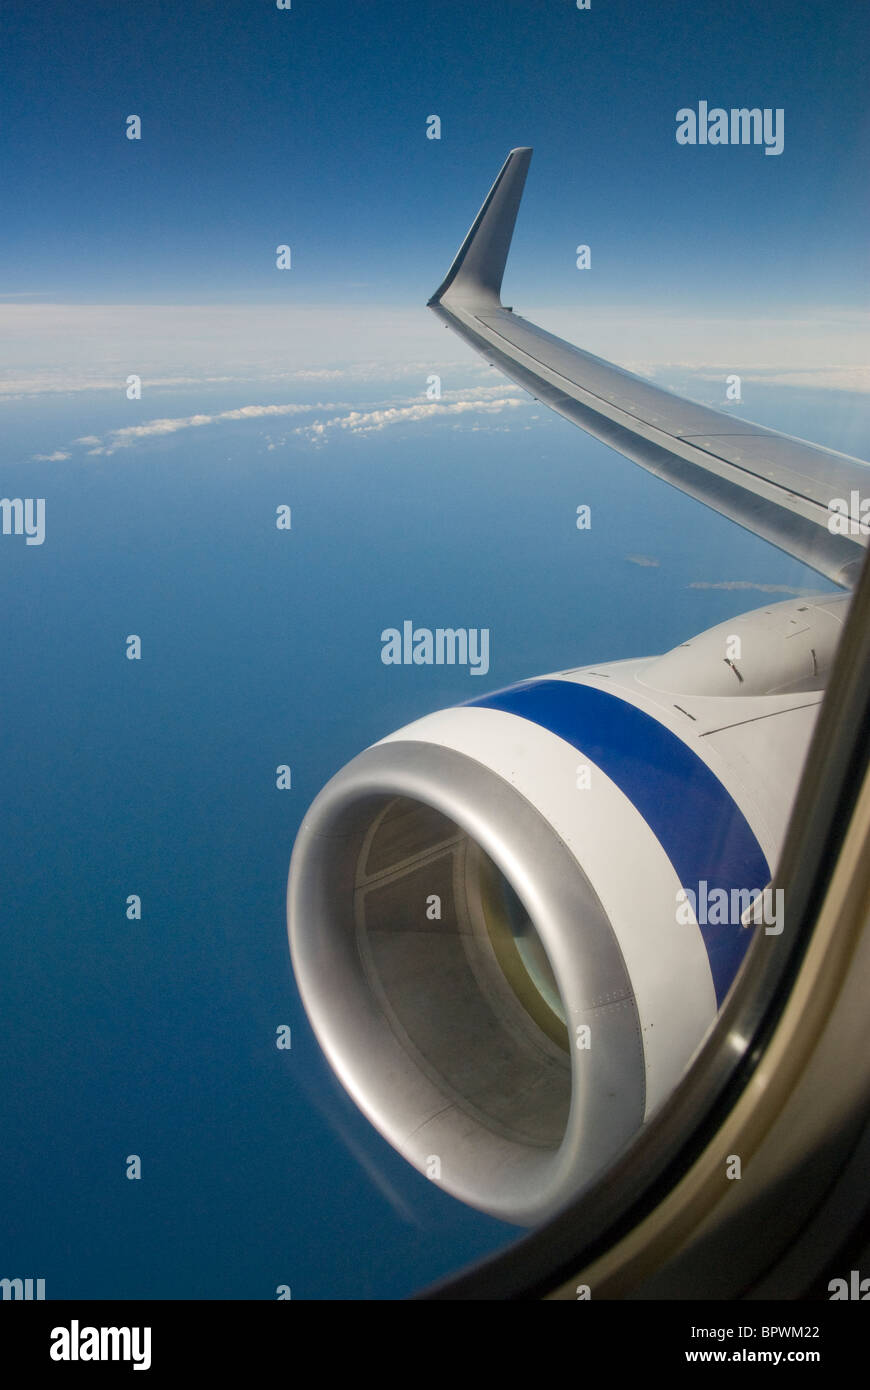 View from aeroplane window of wing and engine over Tasman Bay, South Island, New Zealand - Stock Image